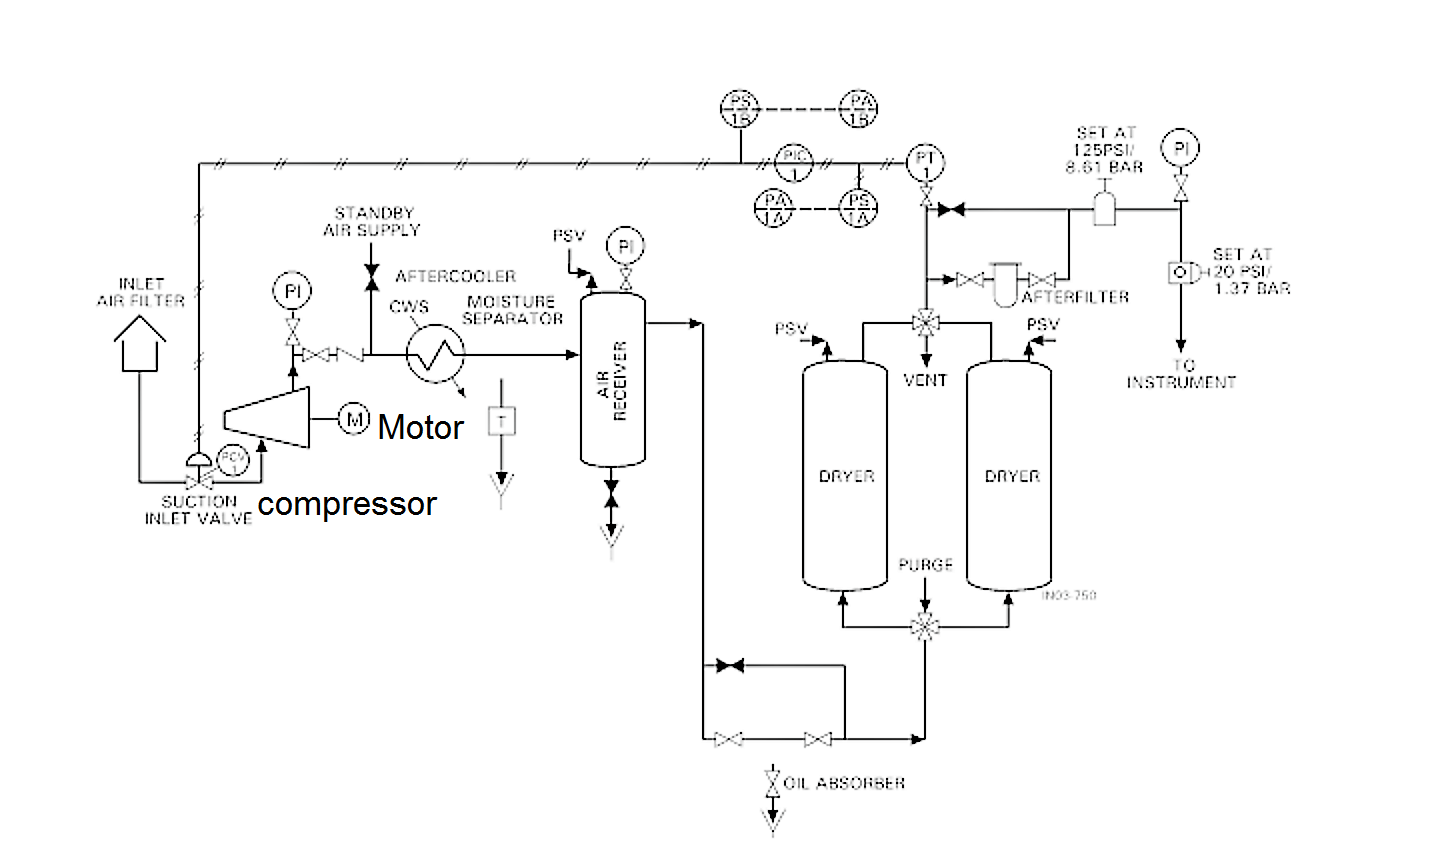 Compressed Air Schematic